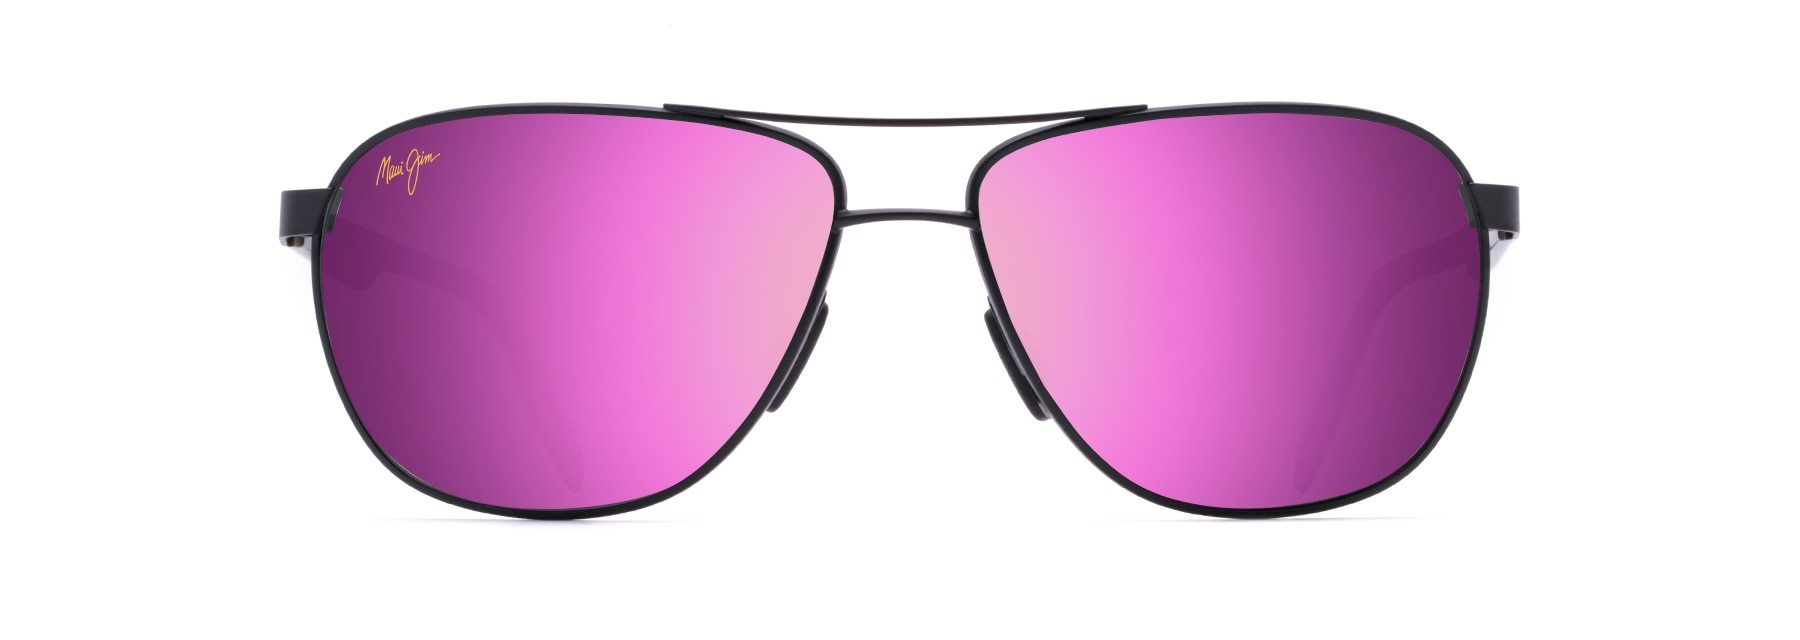 MyMaui Castles MM728-024 Sunglasses